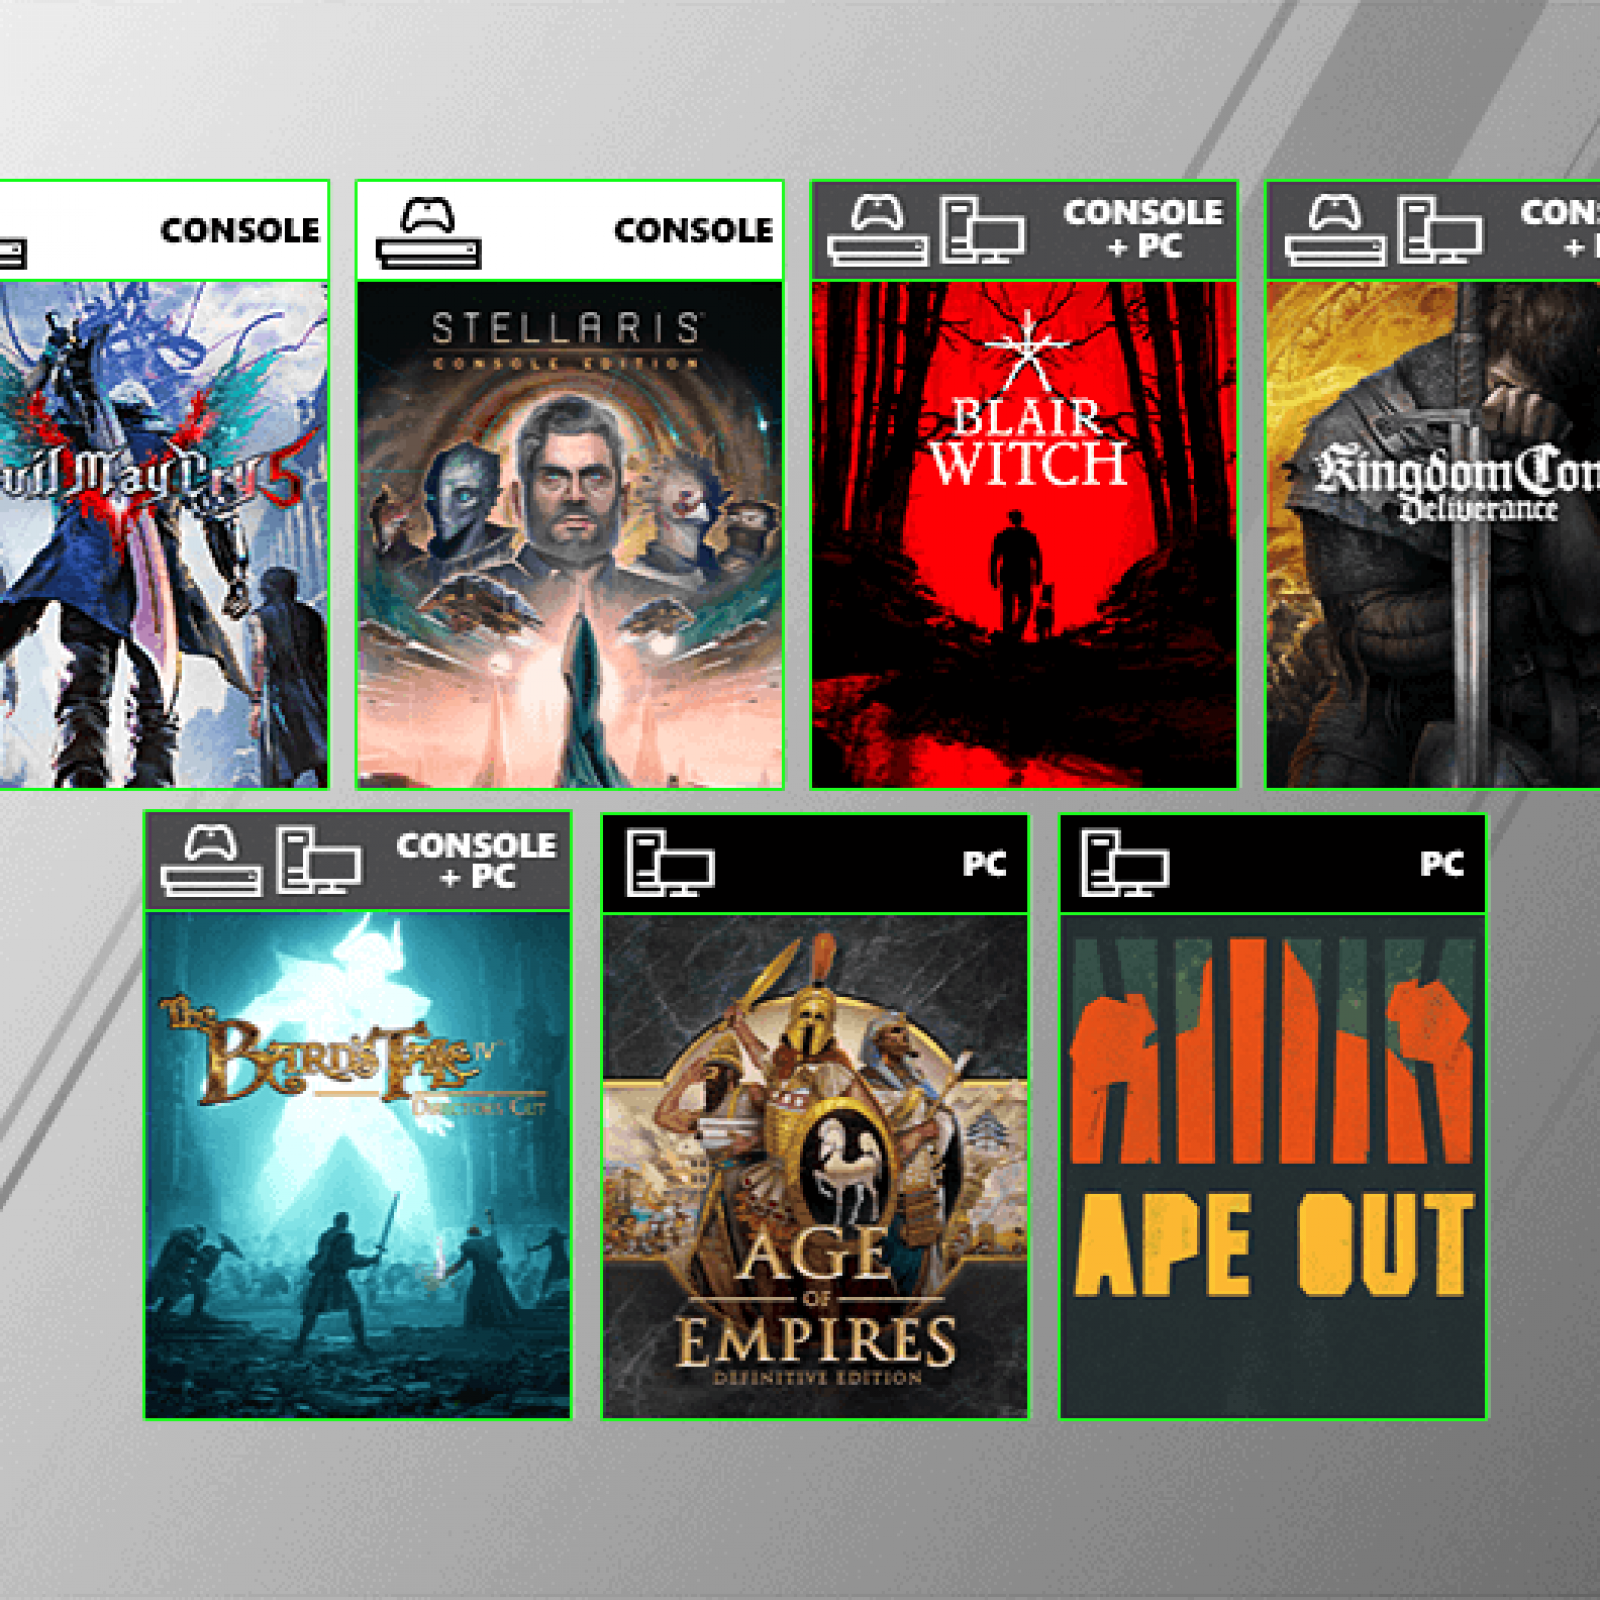 Xbox Games With Gold Full List Which Games Are Free This Month